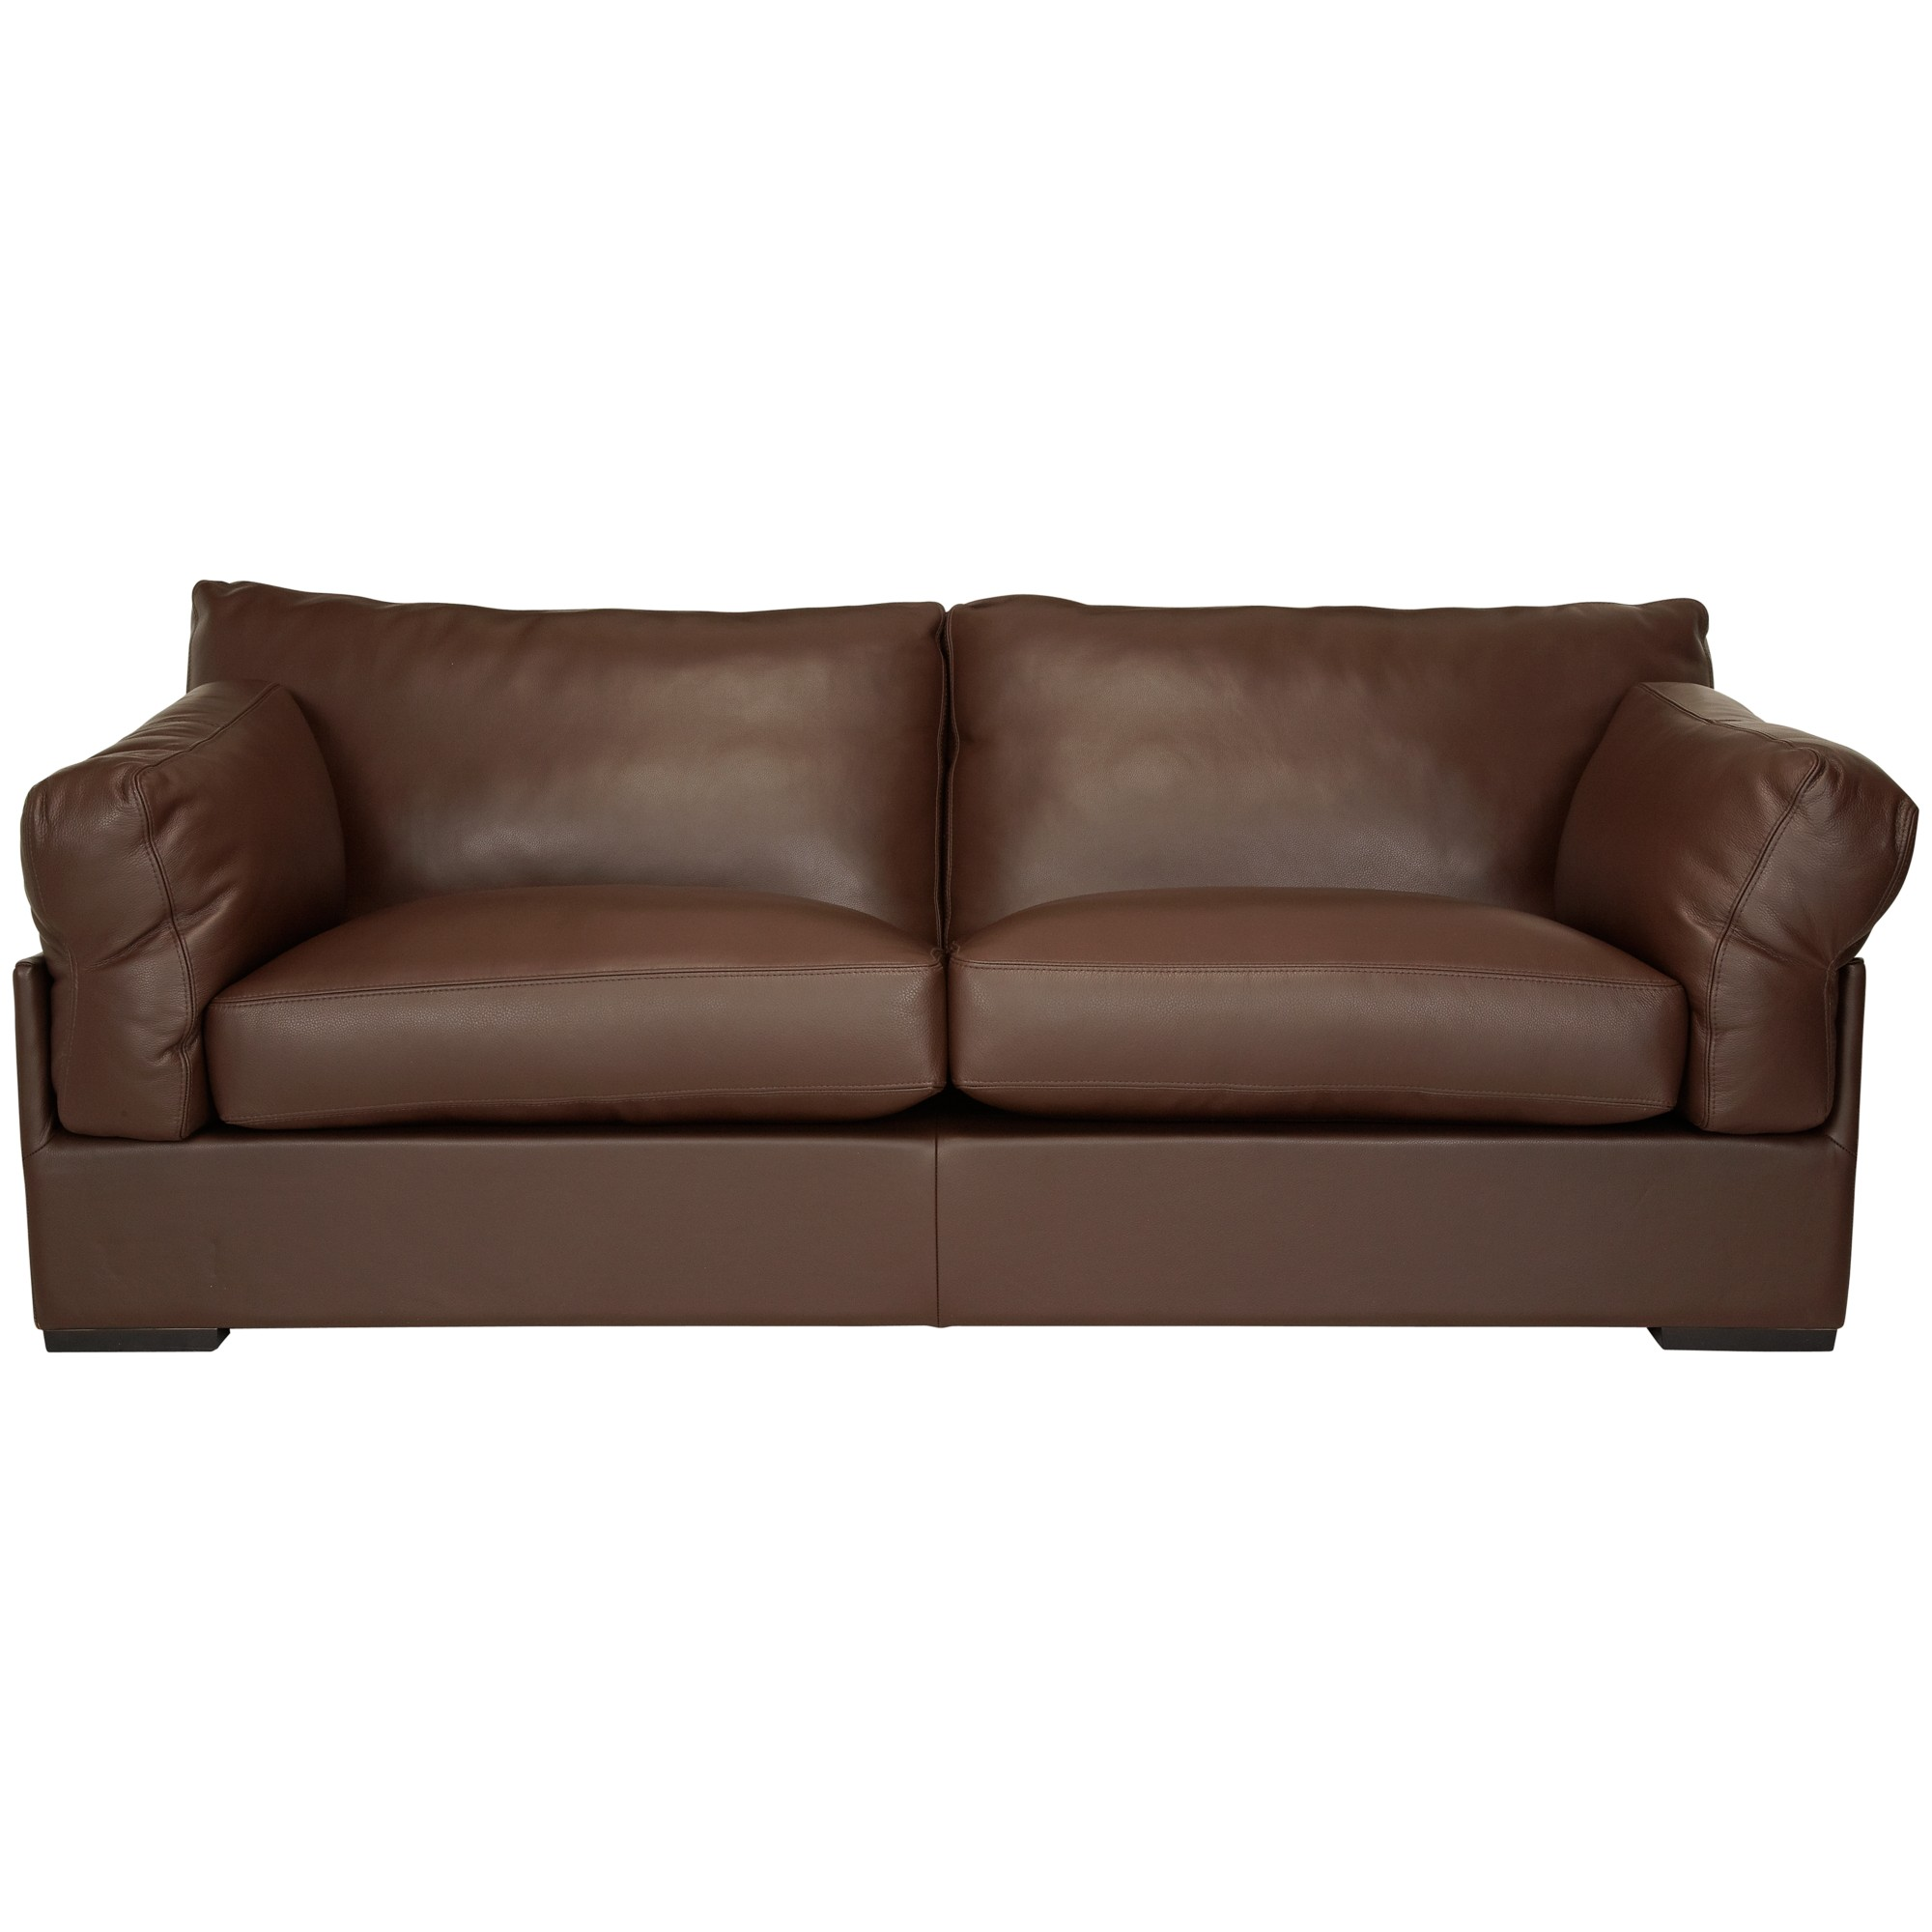 John lewis java leather grand sofa nature brown review for Best place to buy a leather sofa